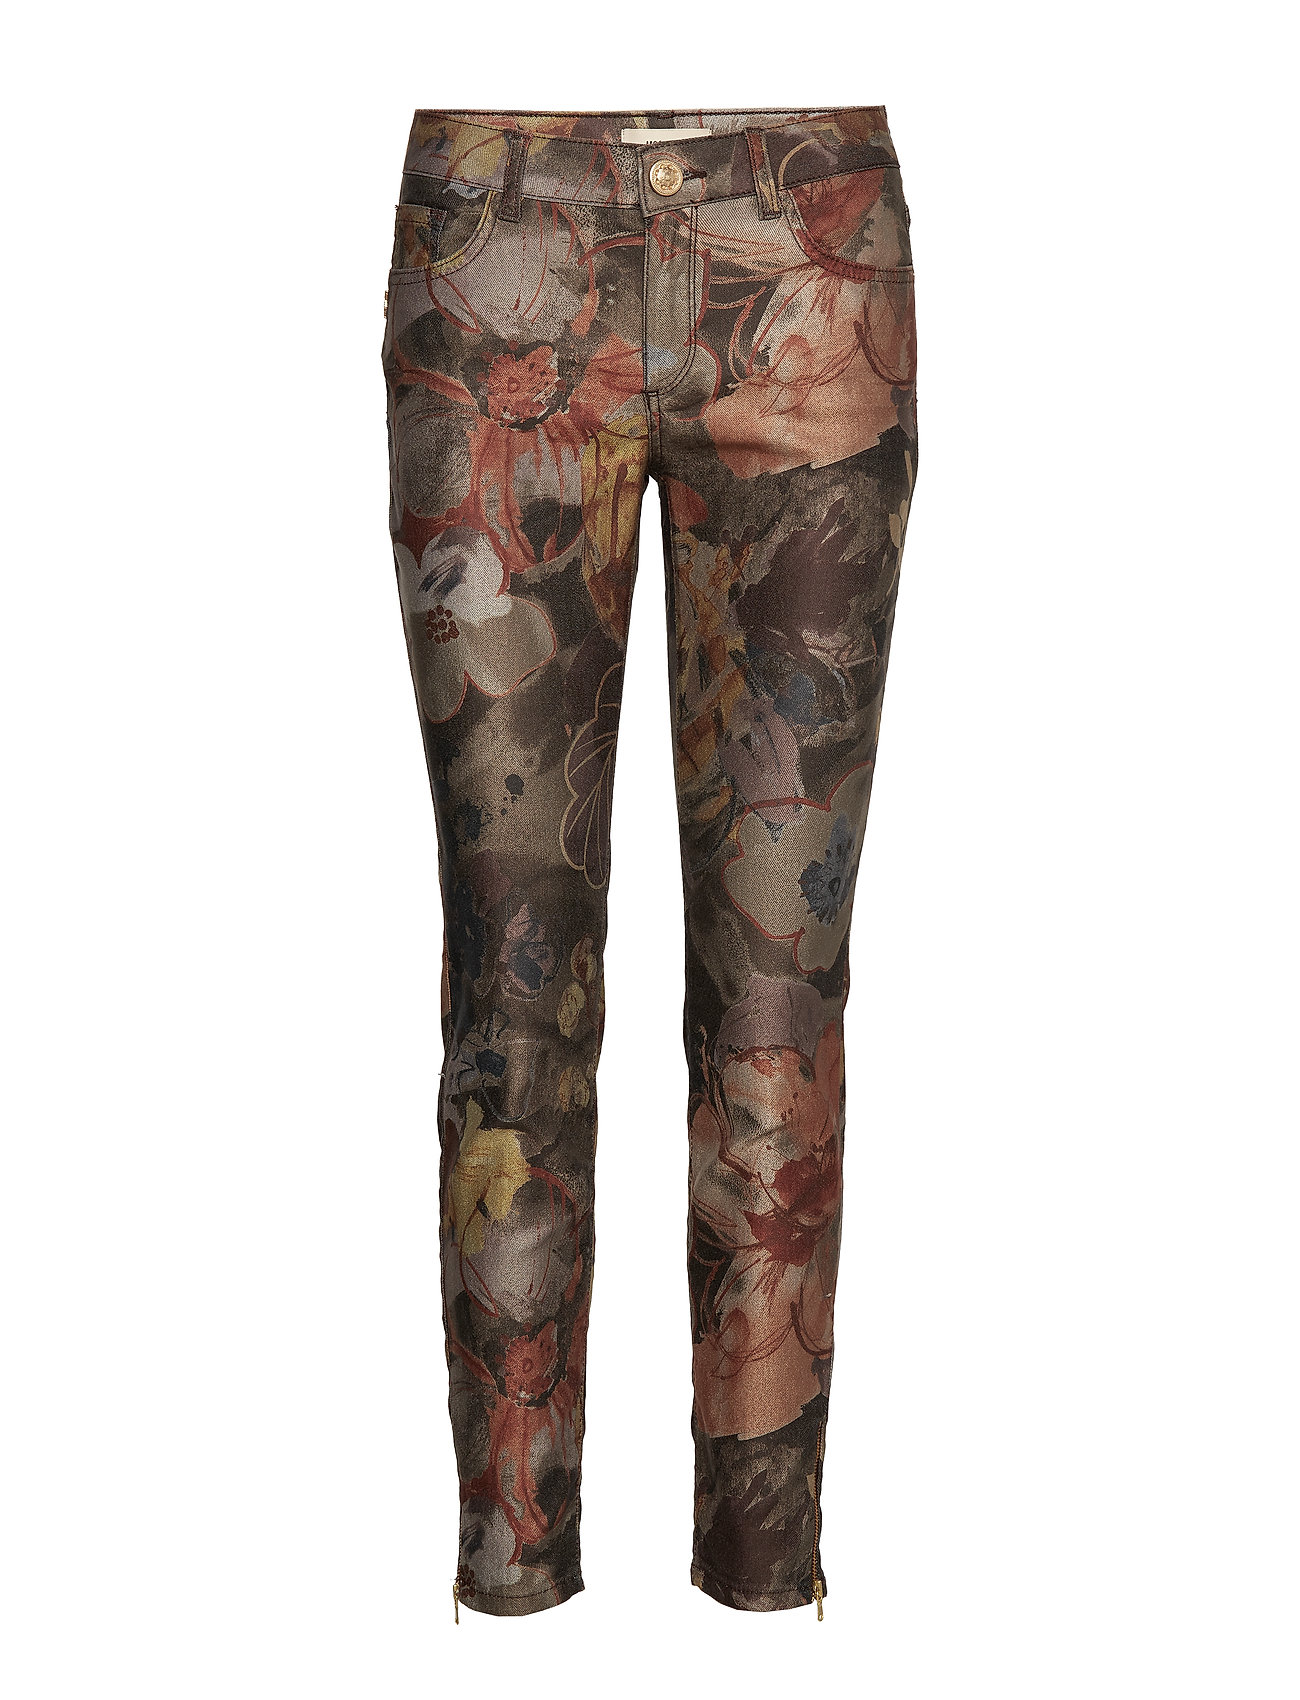 Image of Victoria Hill Pant Smalle Bukser Skinny Pants Brun MOS MOSH (3204283113)